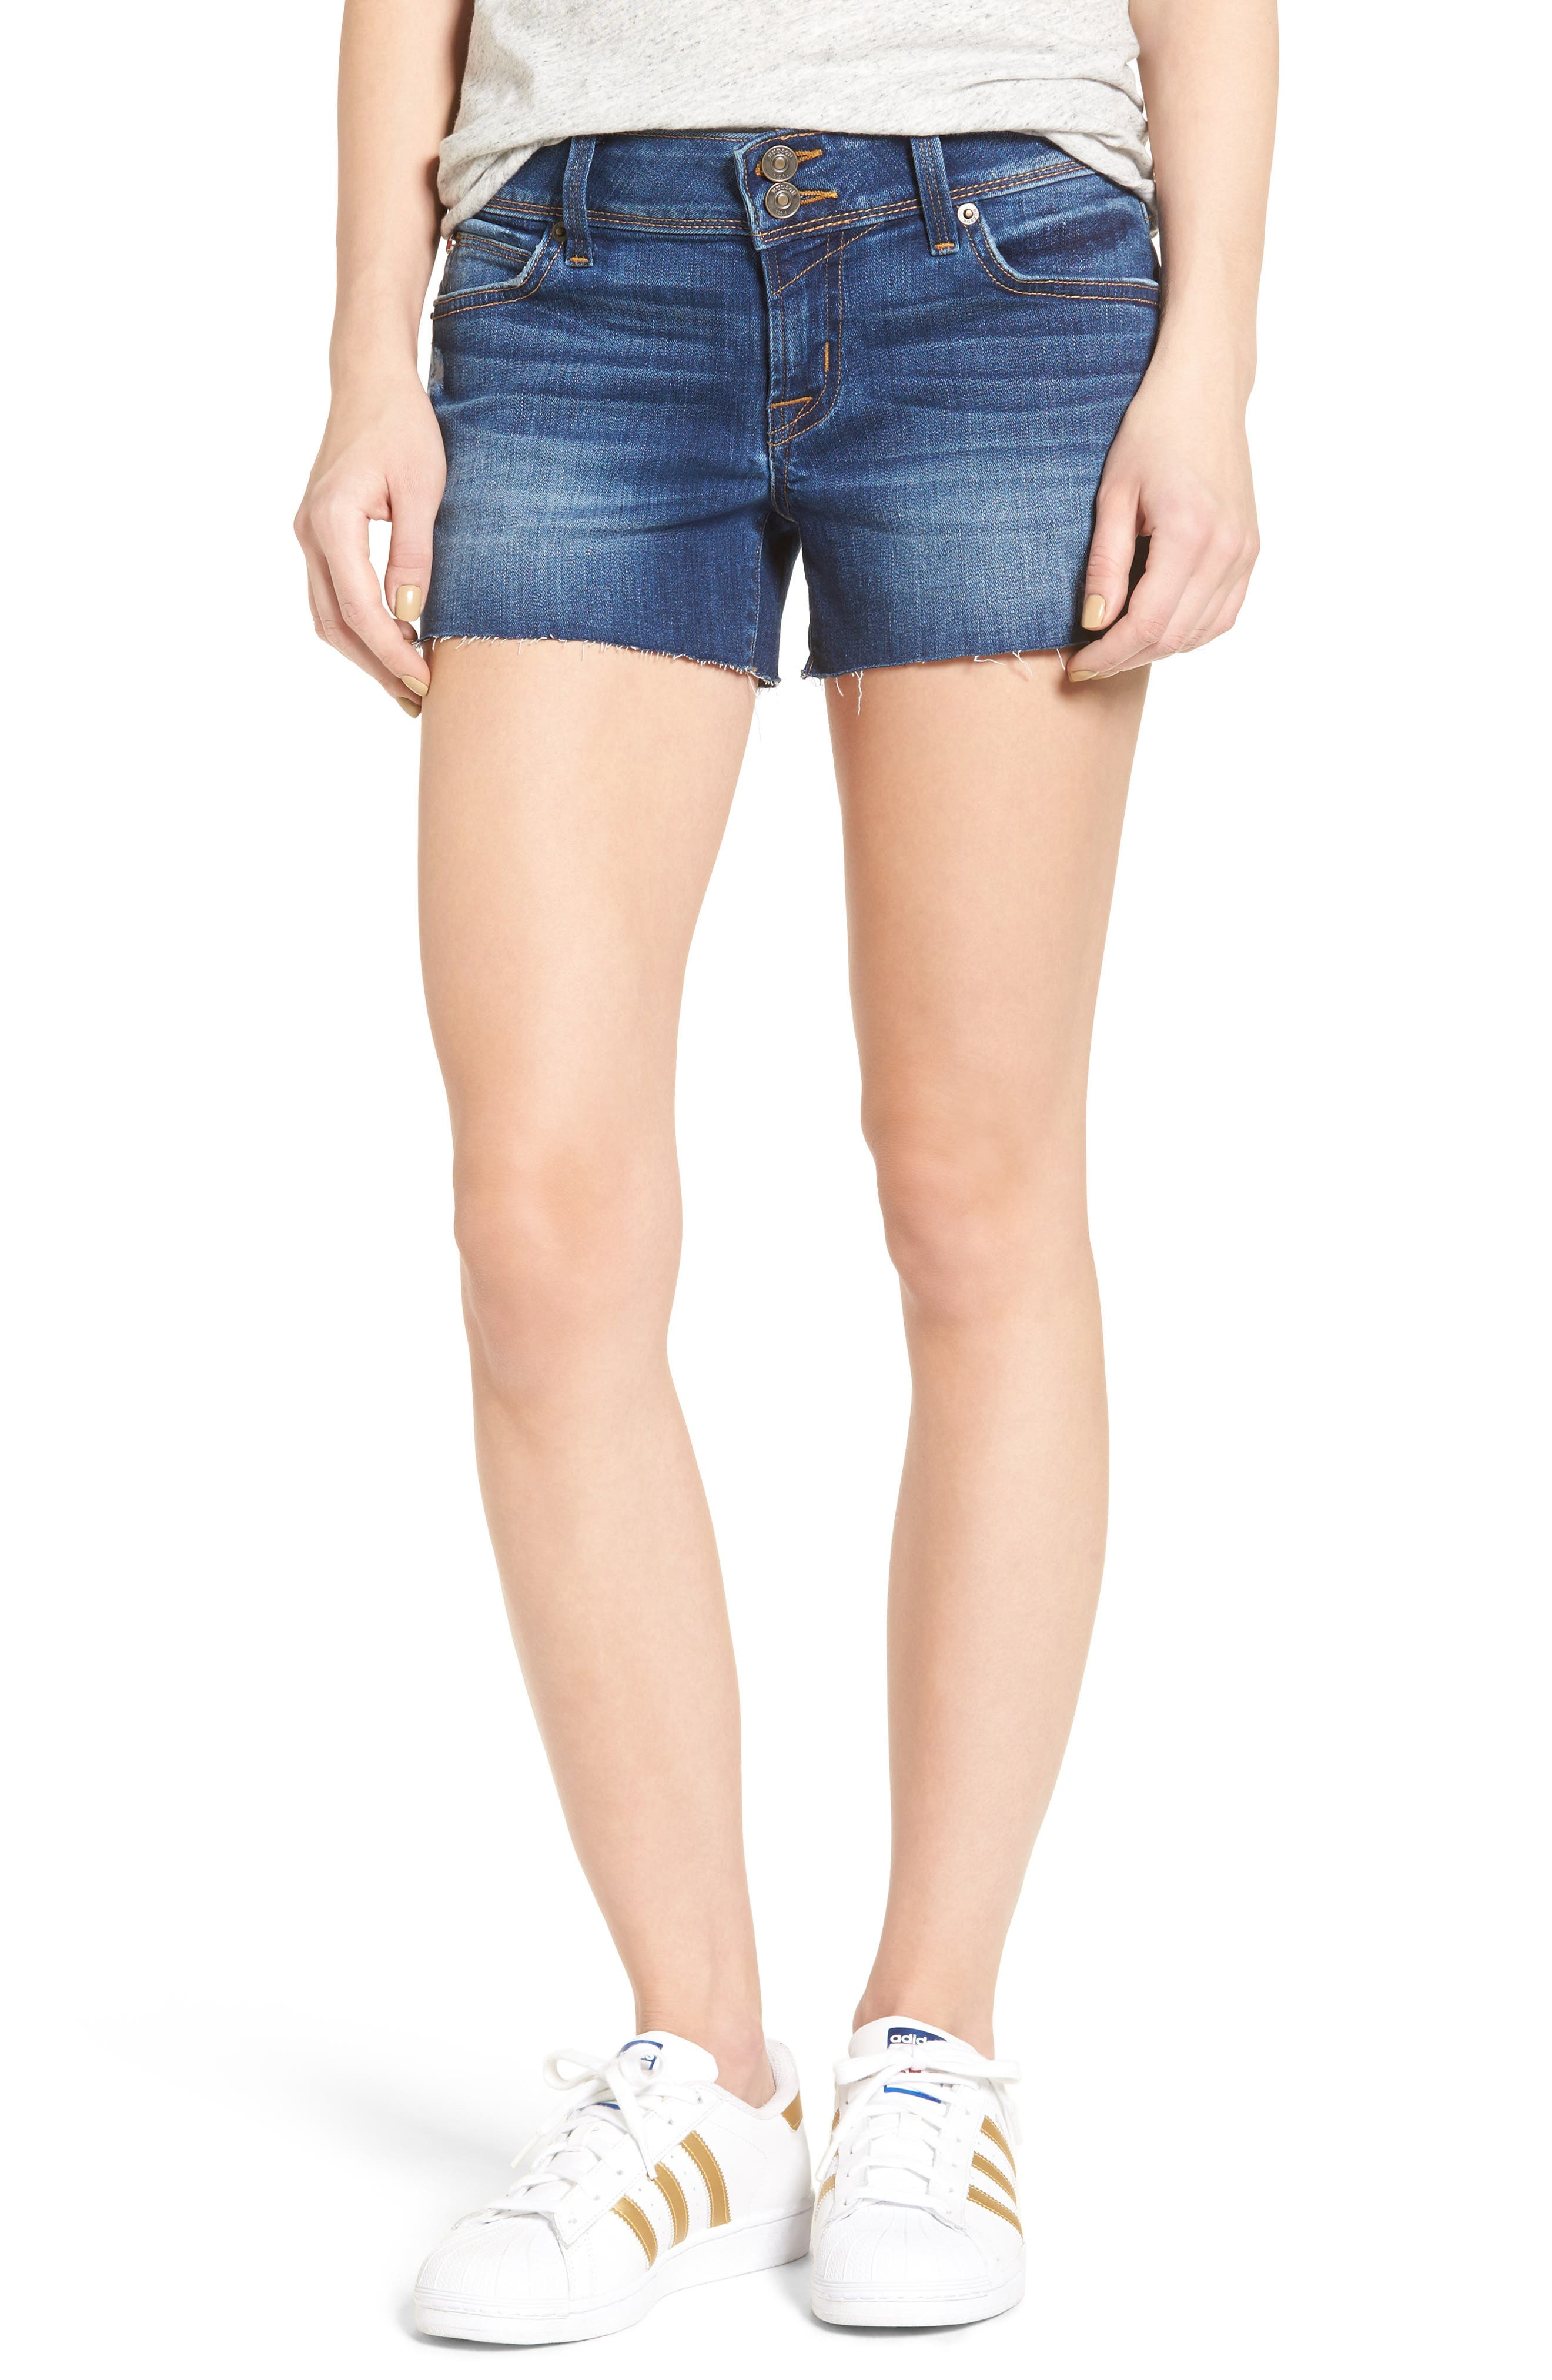 Alternate Image 1 Selected - Hudson Jeans Croxley Cutoff Denim Shorts (Insight)